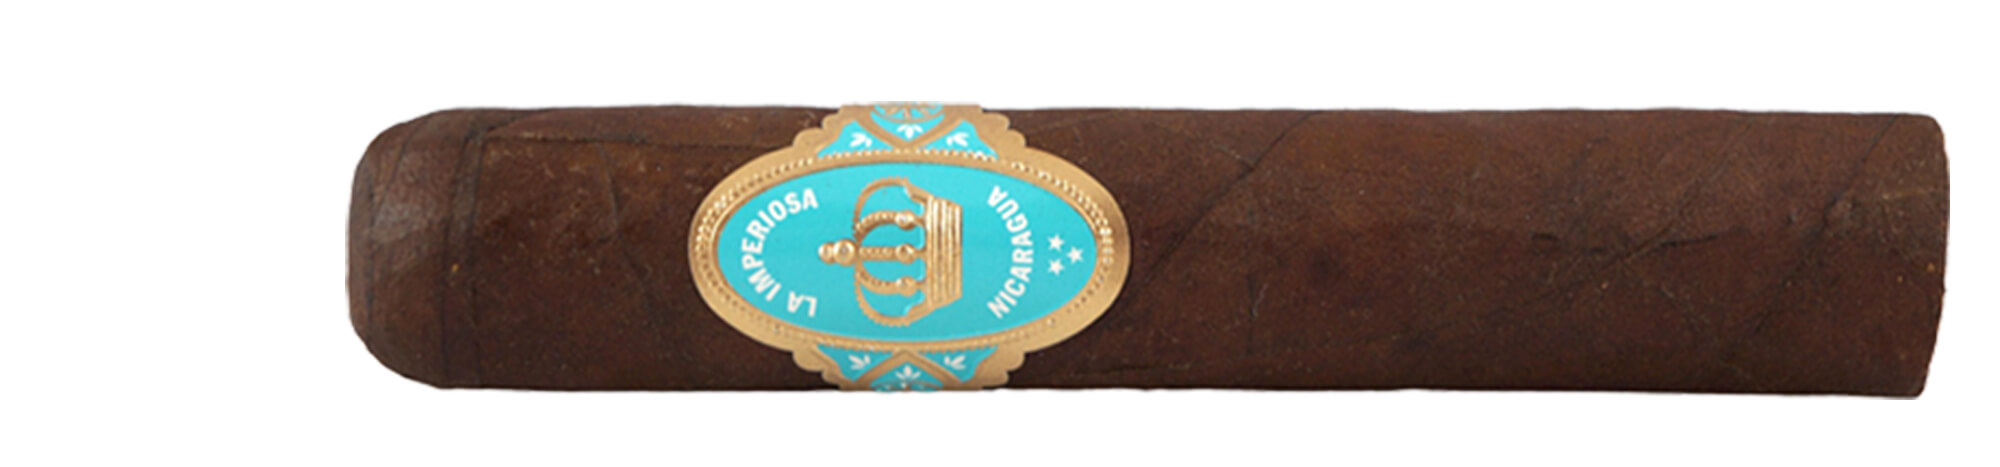 The Crowned Heads La Imperiosa